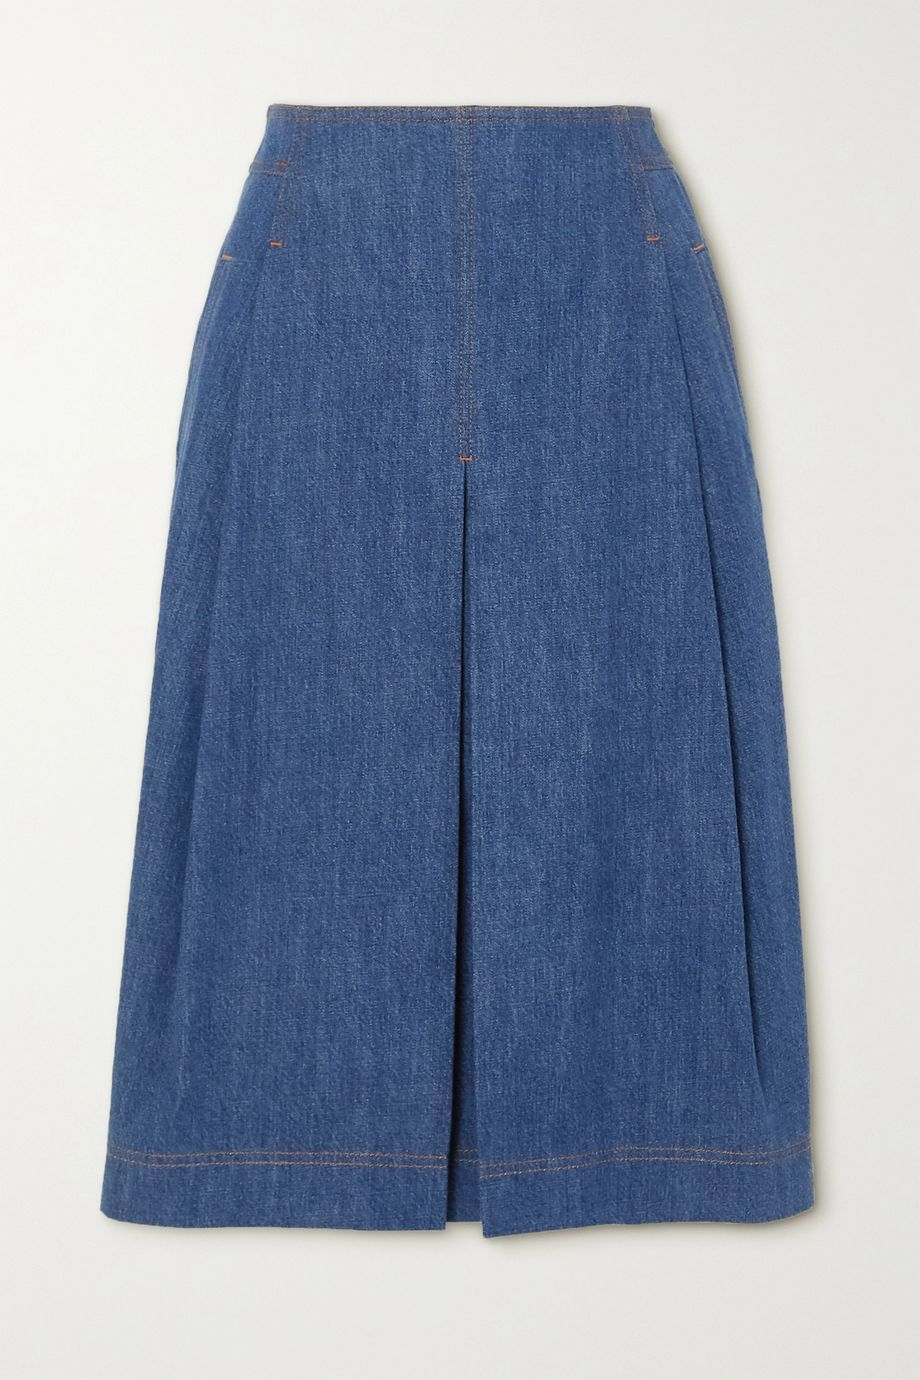 Chloé Pleated organic denim midi skirt